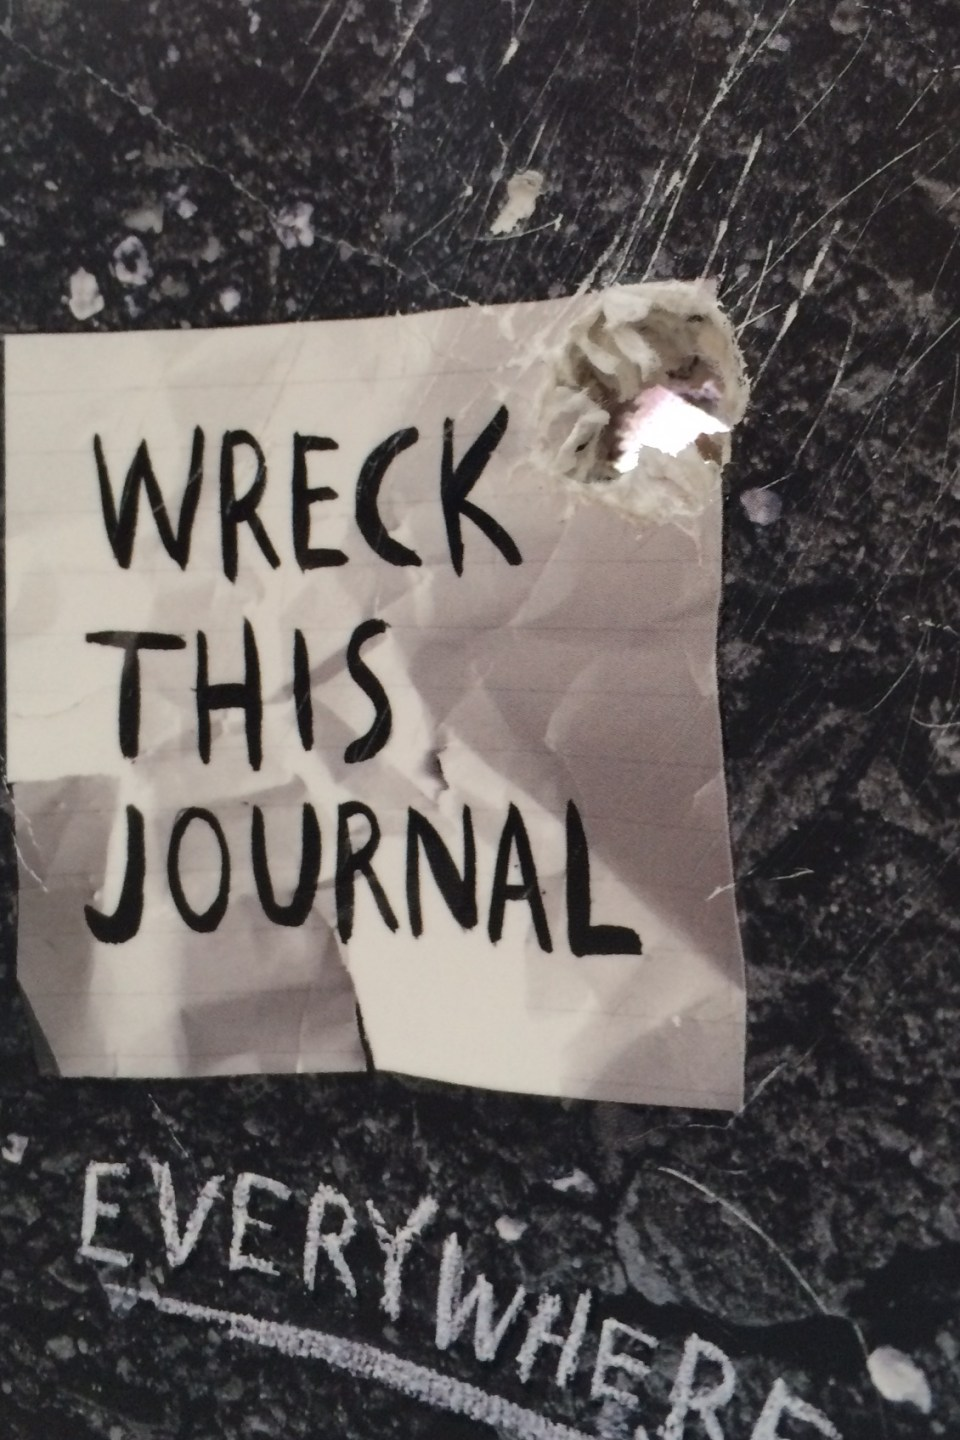 Hole-y wrecked journal, Batman!